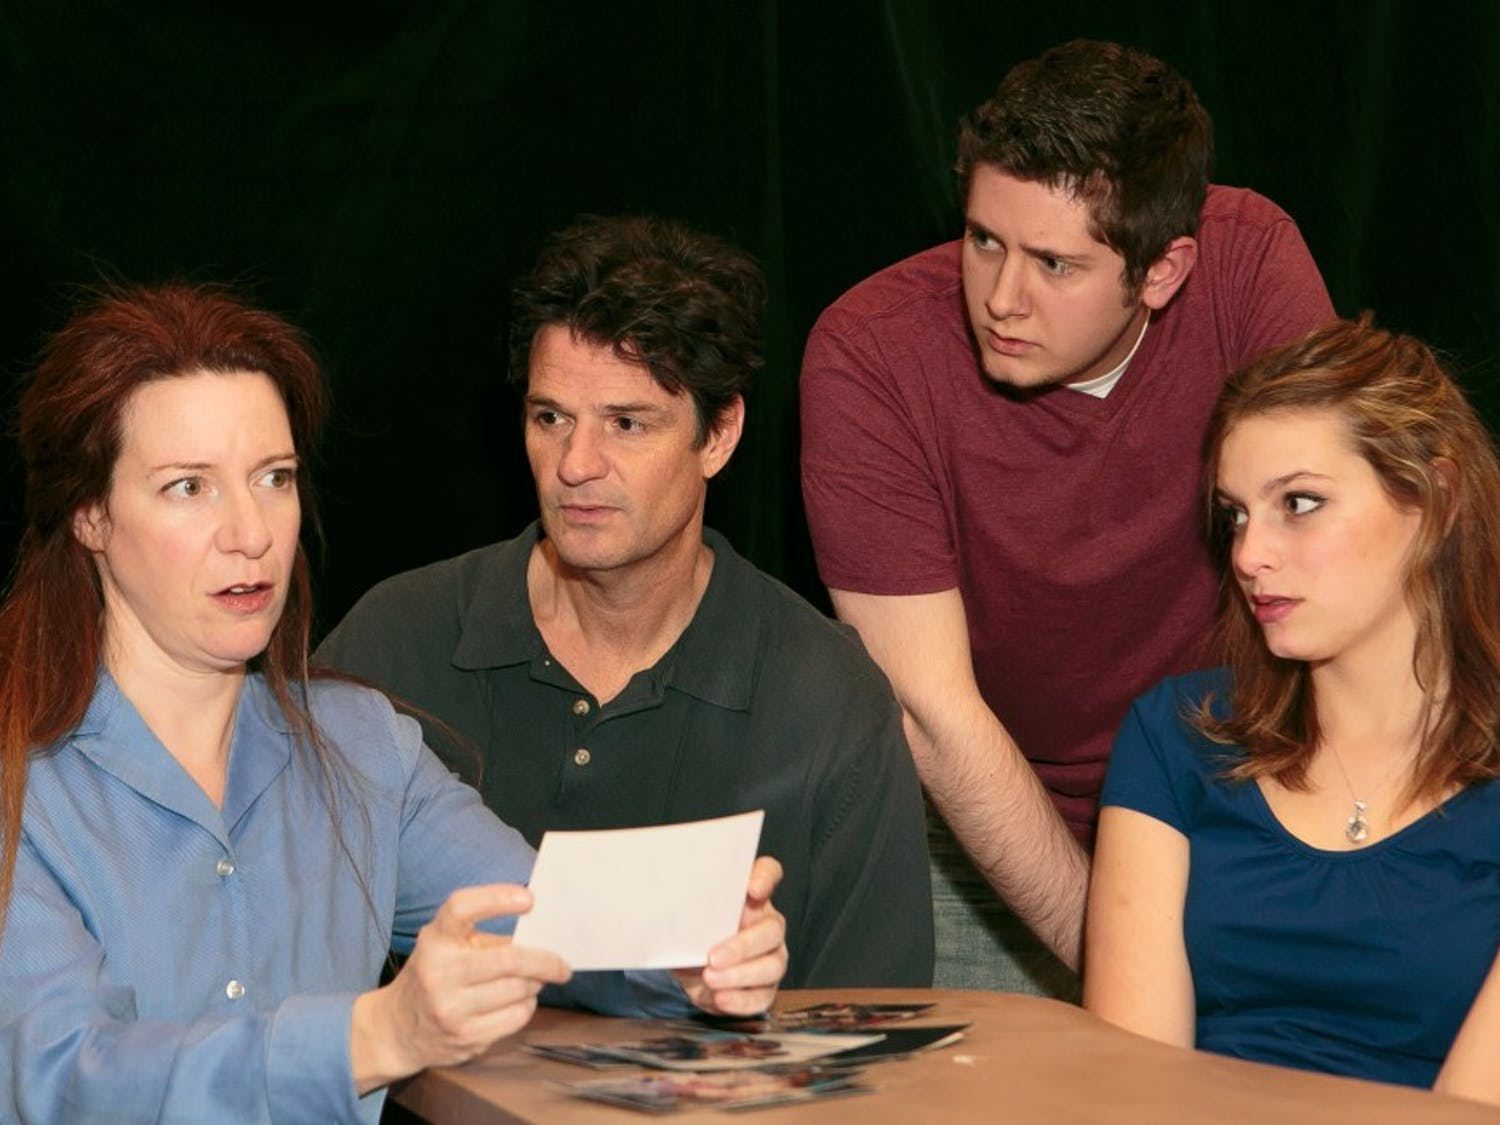 """Lisa Jolley, John Allore, Wesley Miller and Abigail Coryell (left to right) rehearse for Deep Dish Theater Company's production of """"Next to Normal"""" opening tonight in University Mall."""